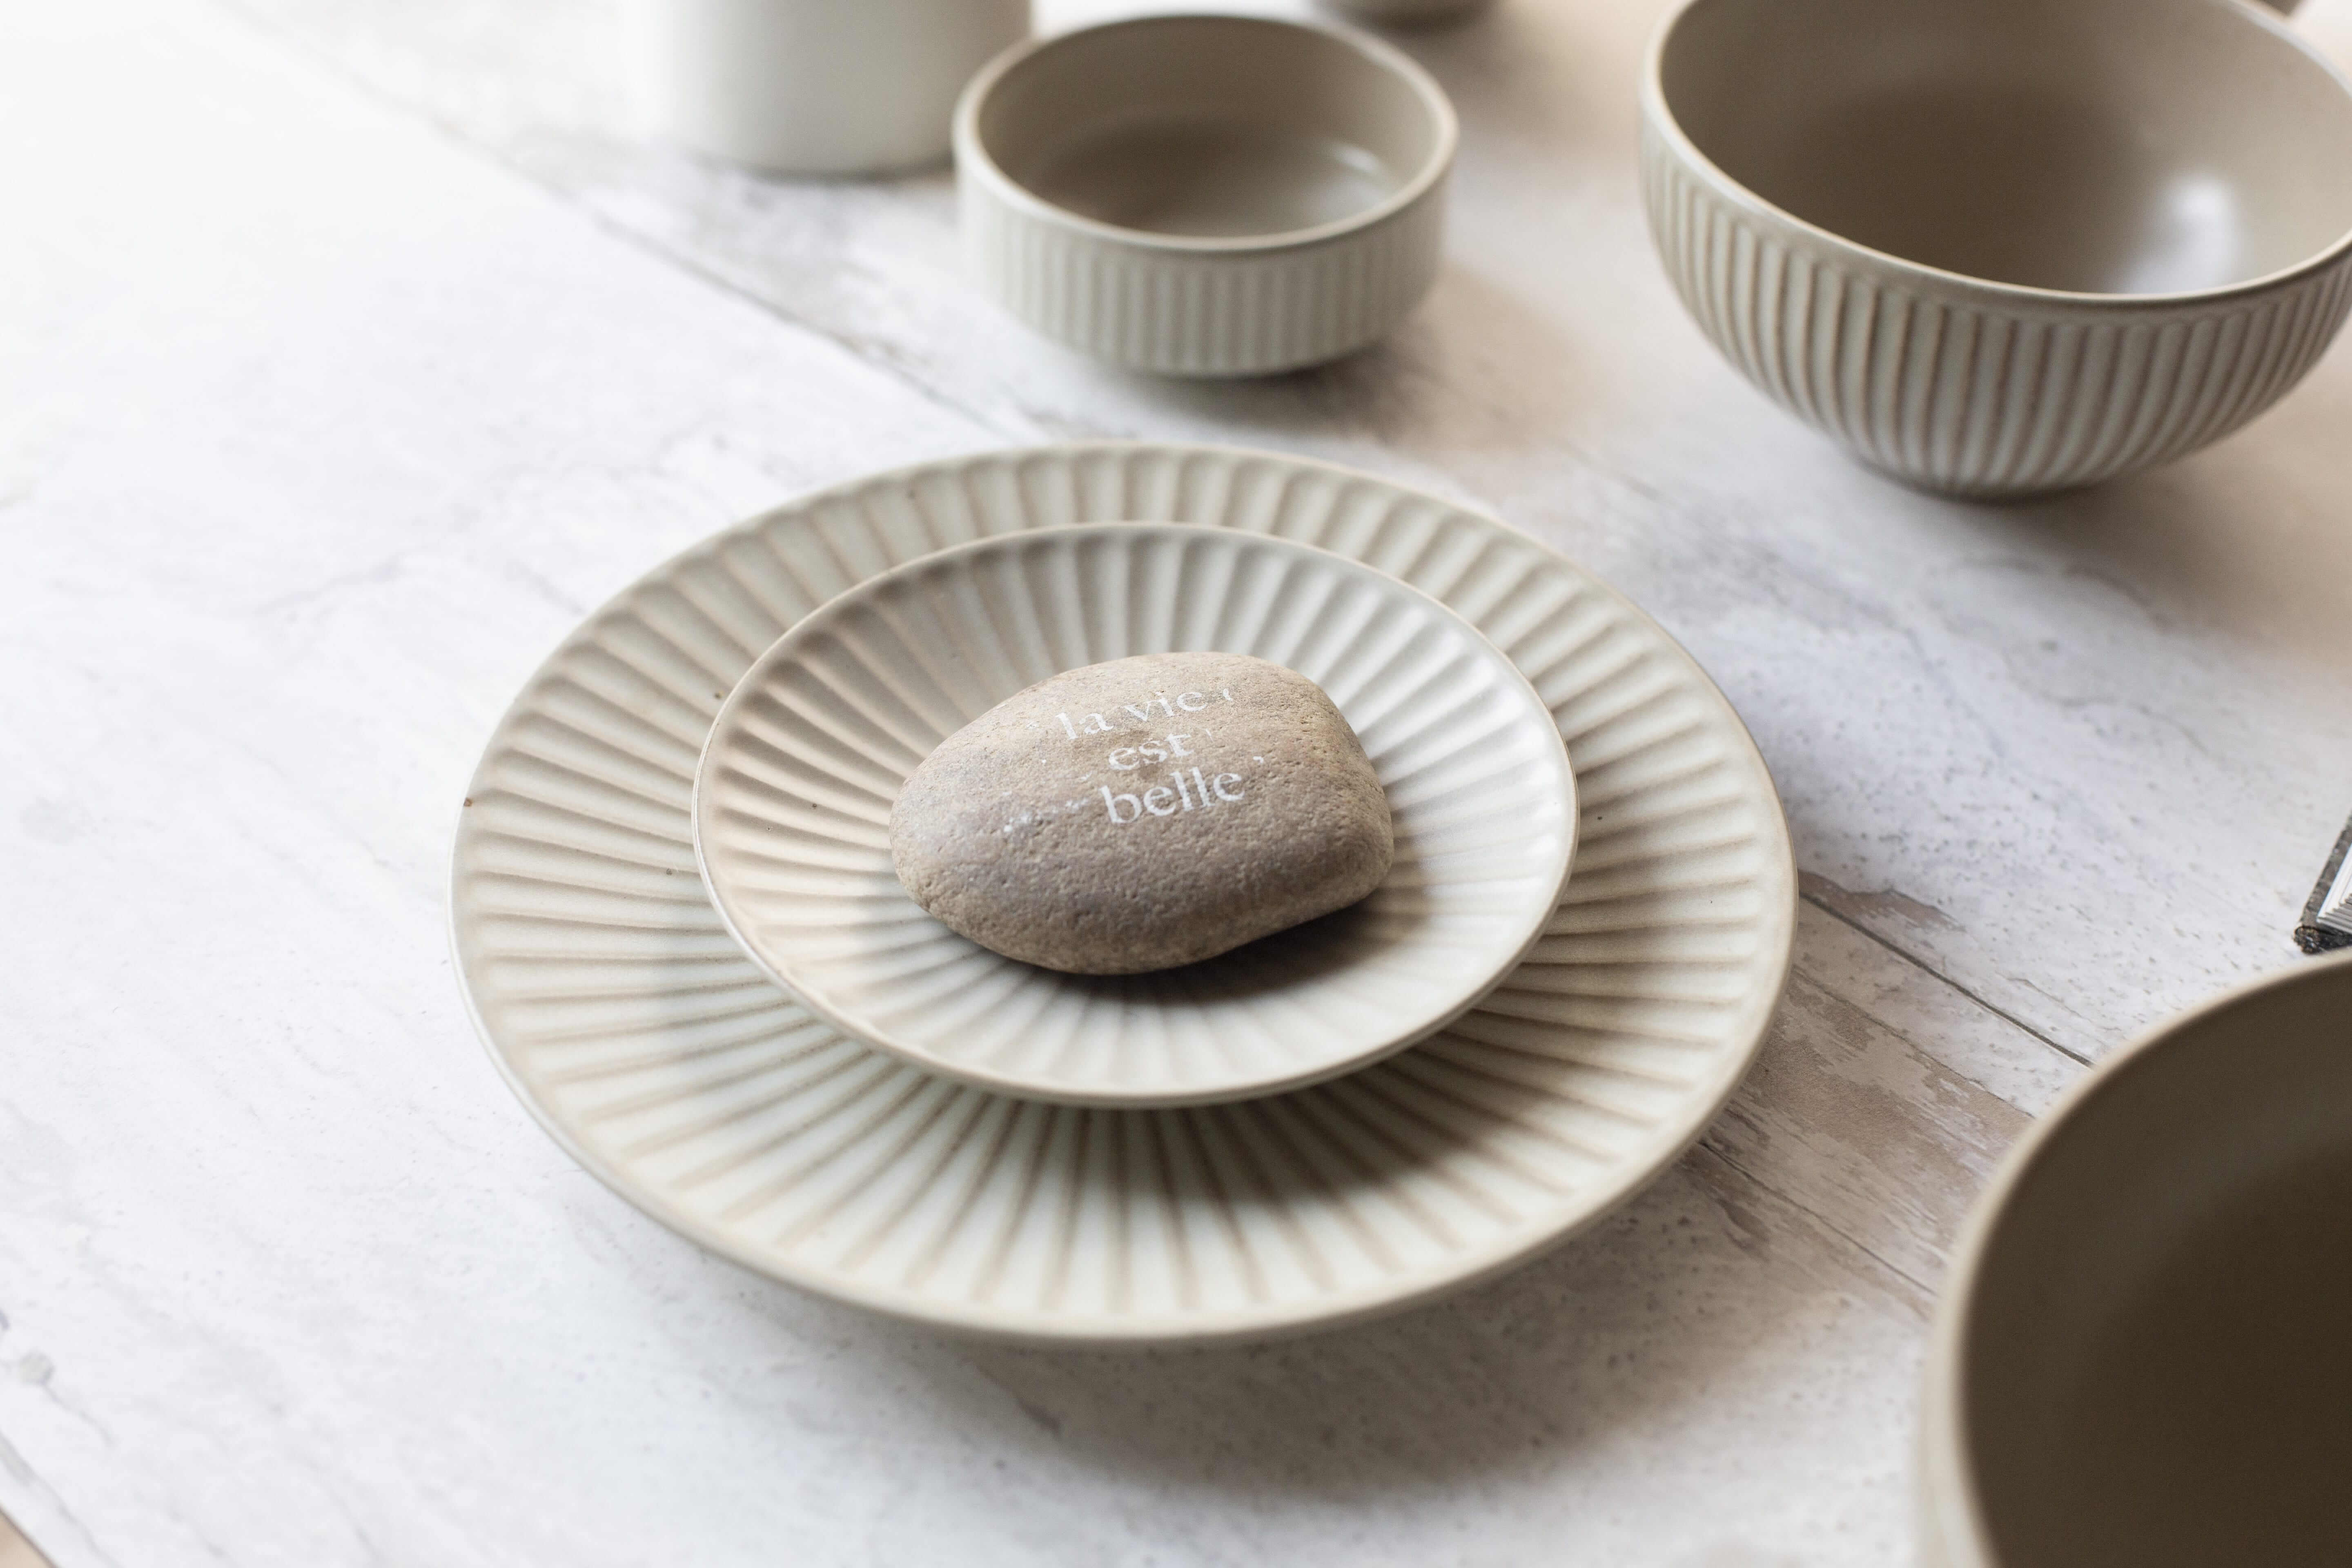 Handmade Korean Ceramics Oatmeal Colour Onseo Plate in different Sizes